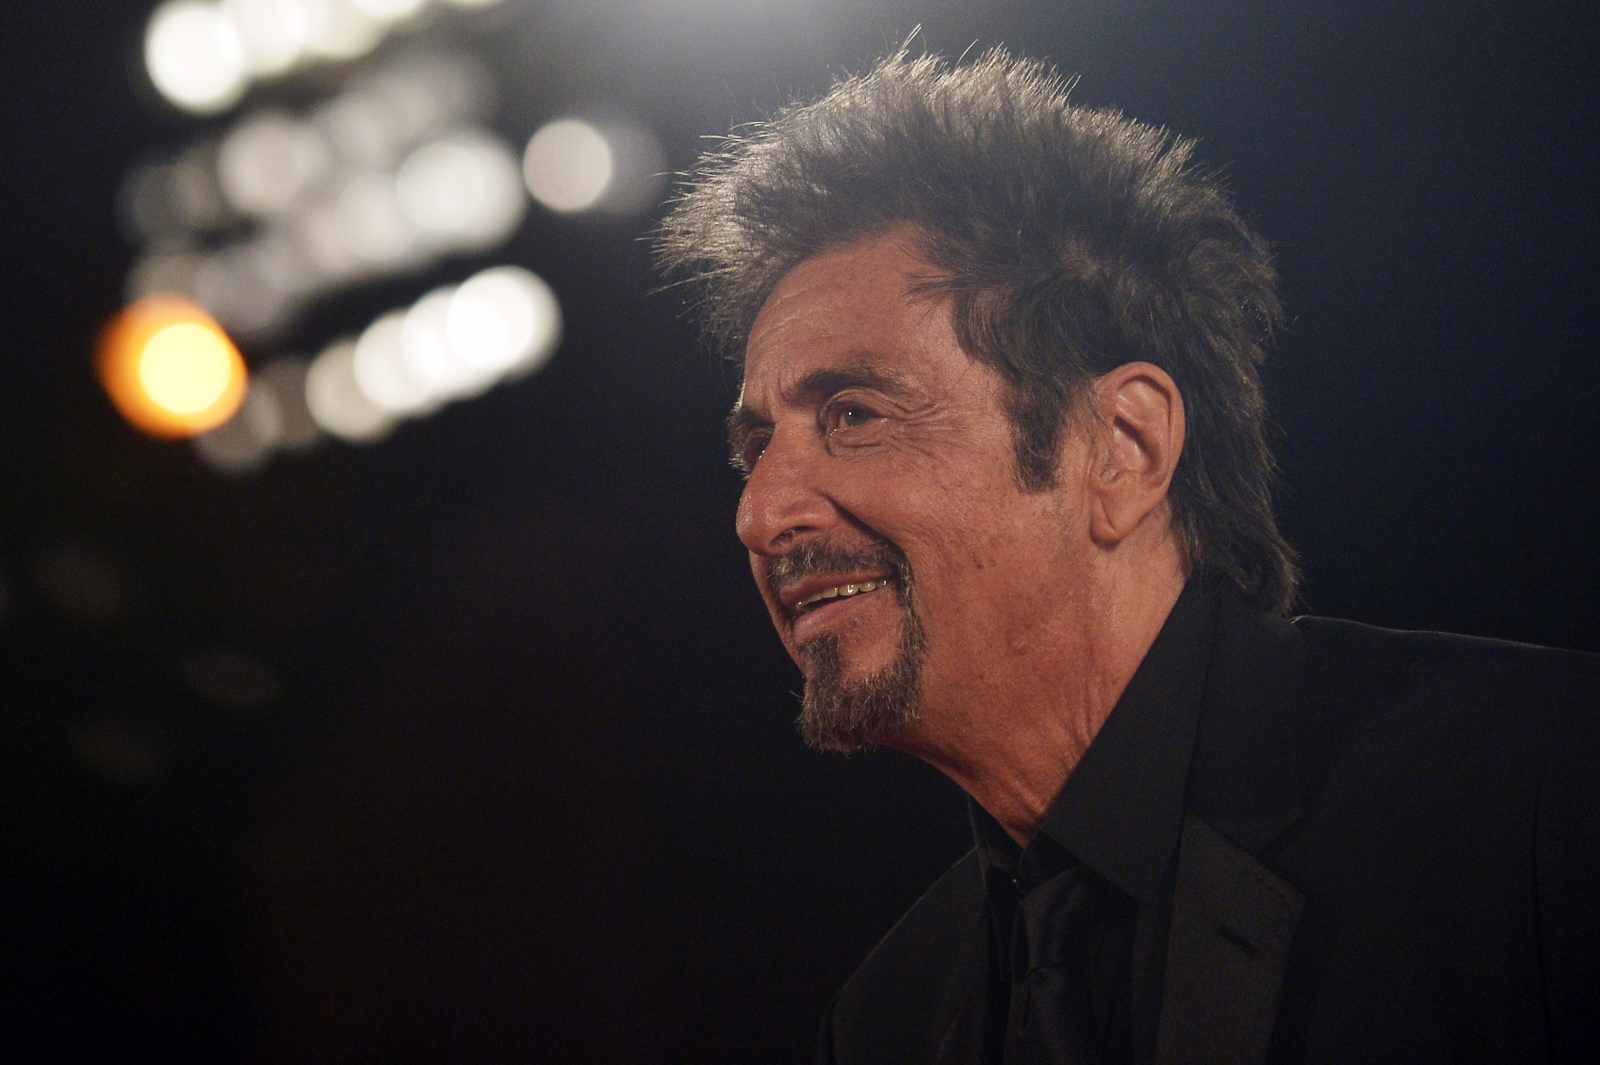 Al Pacino might join Marvel universe